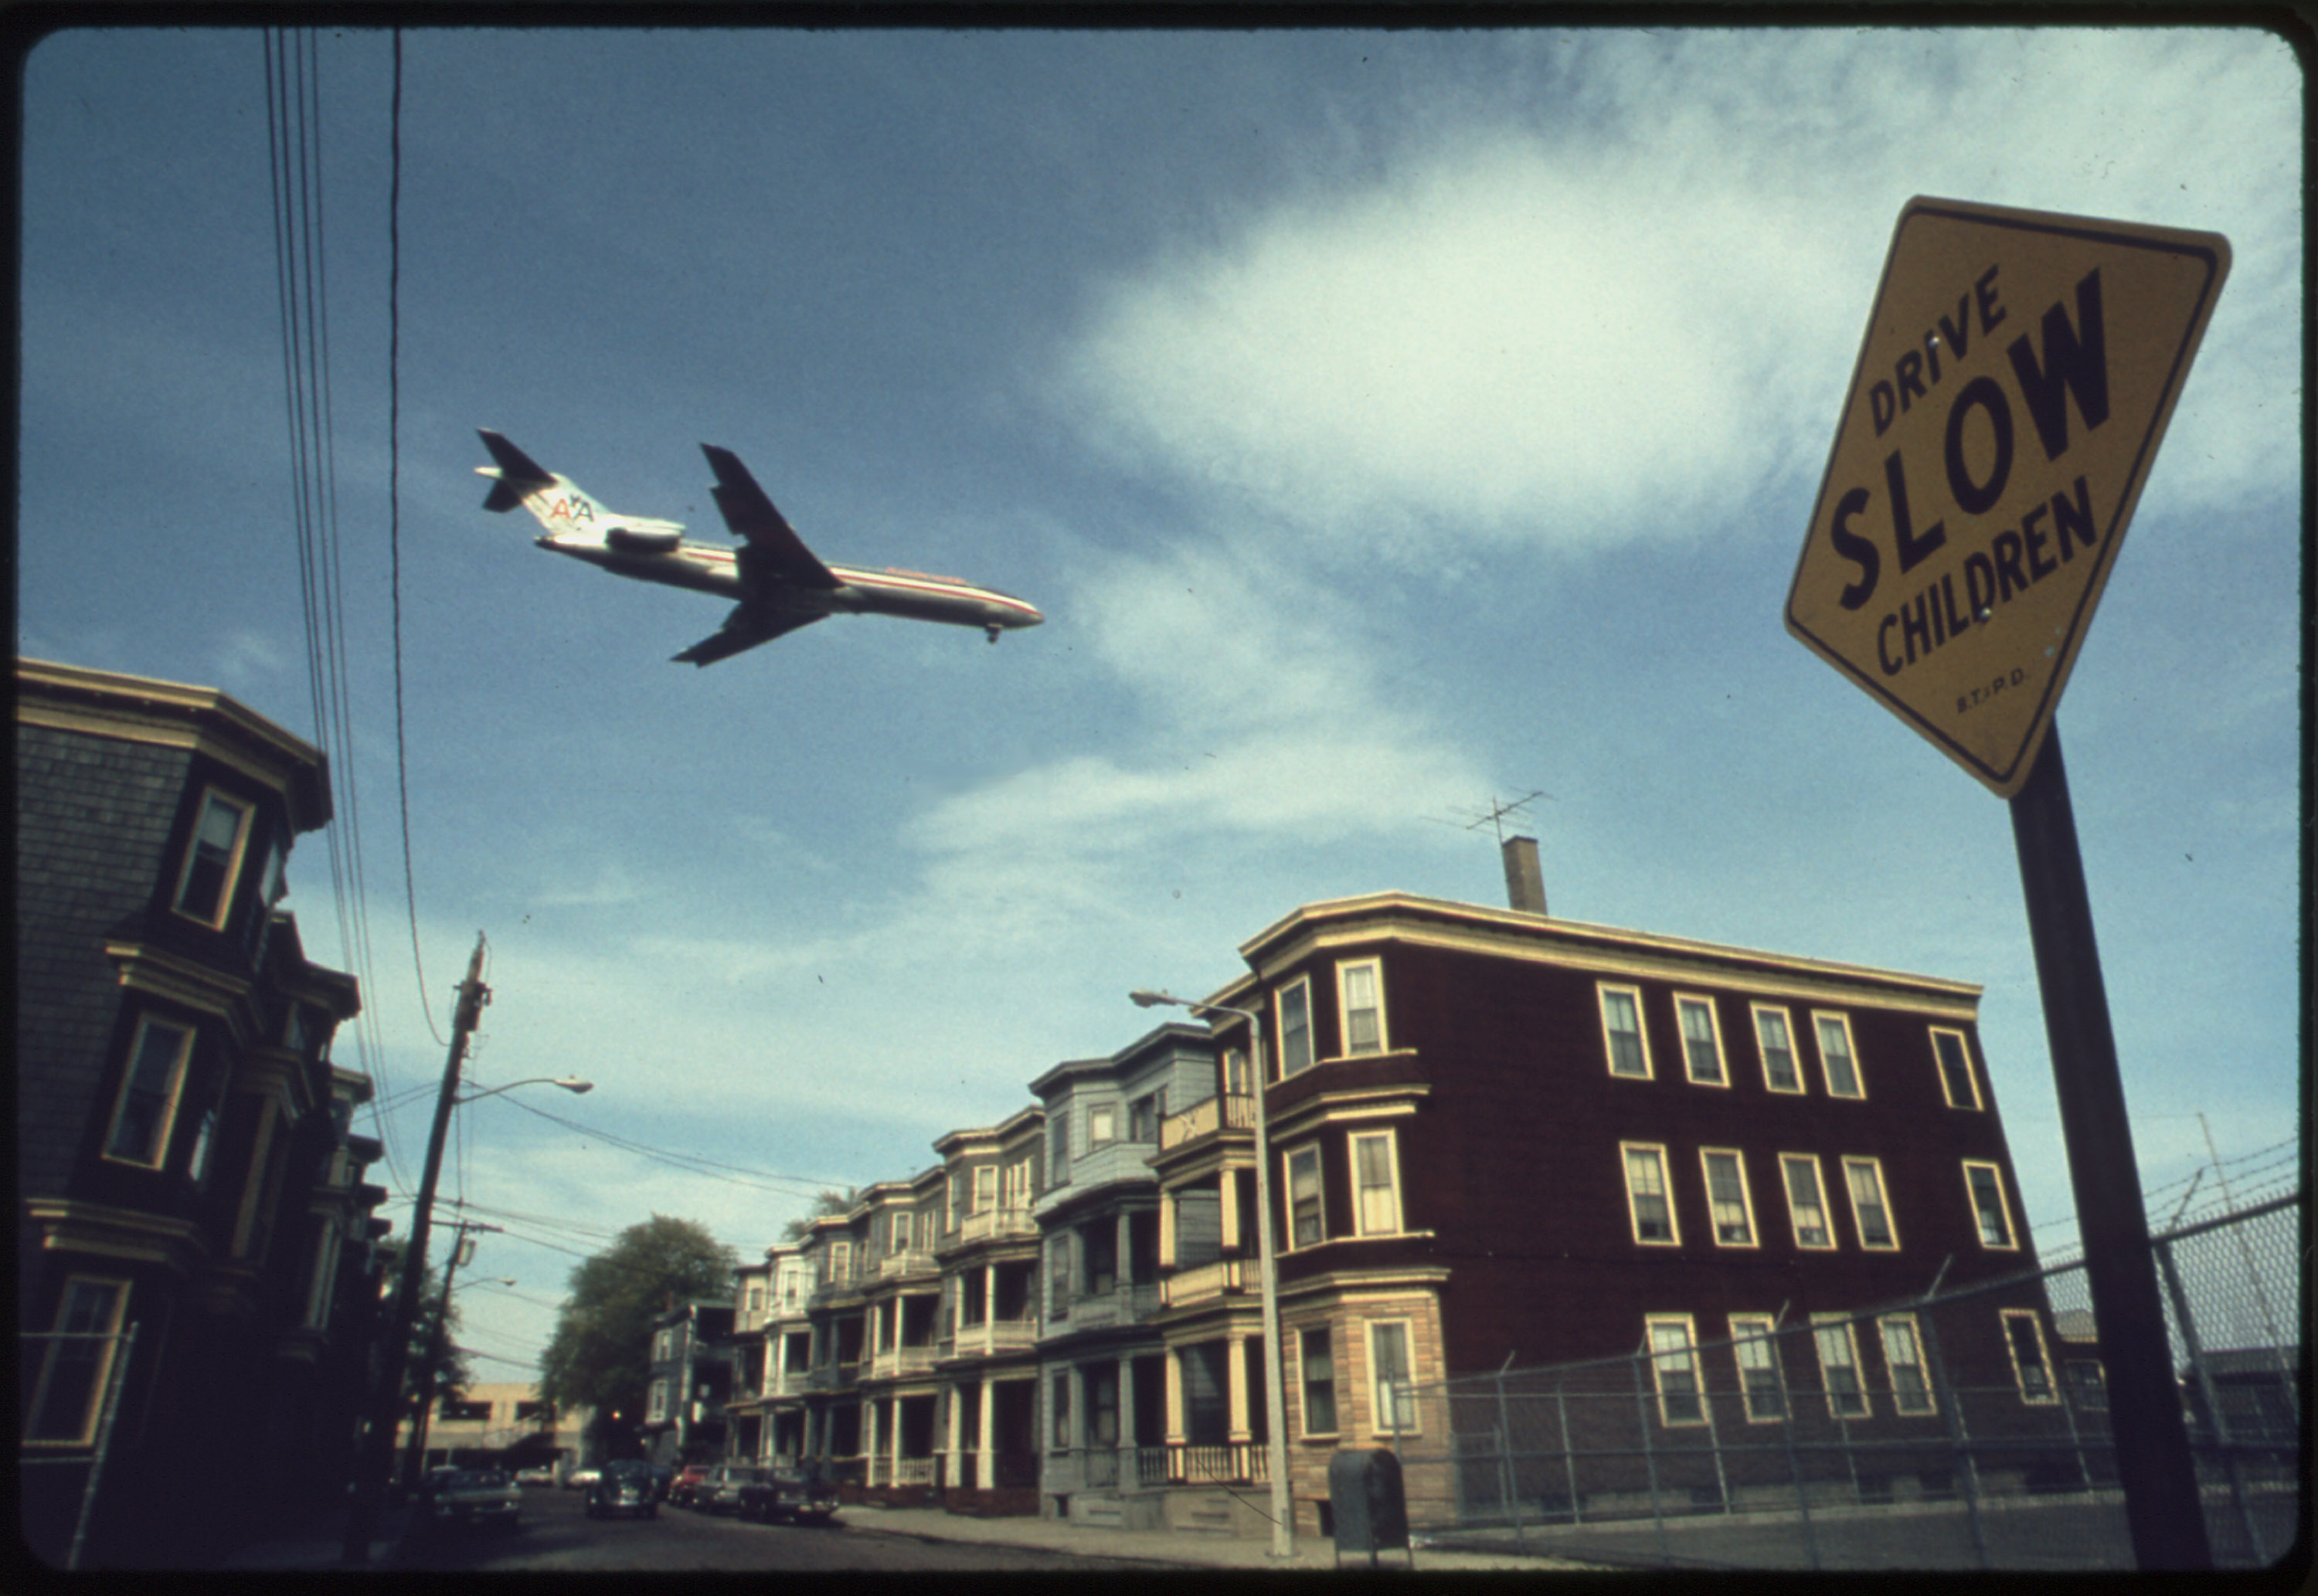 An airplane flies over houses in Boston in 1973.